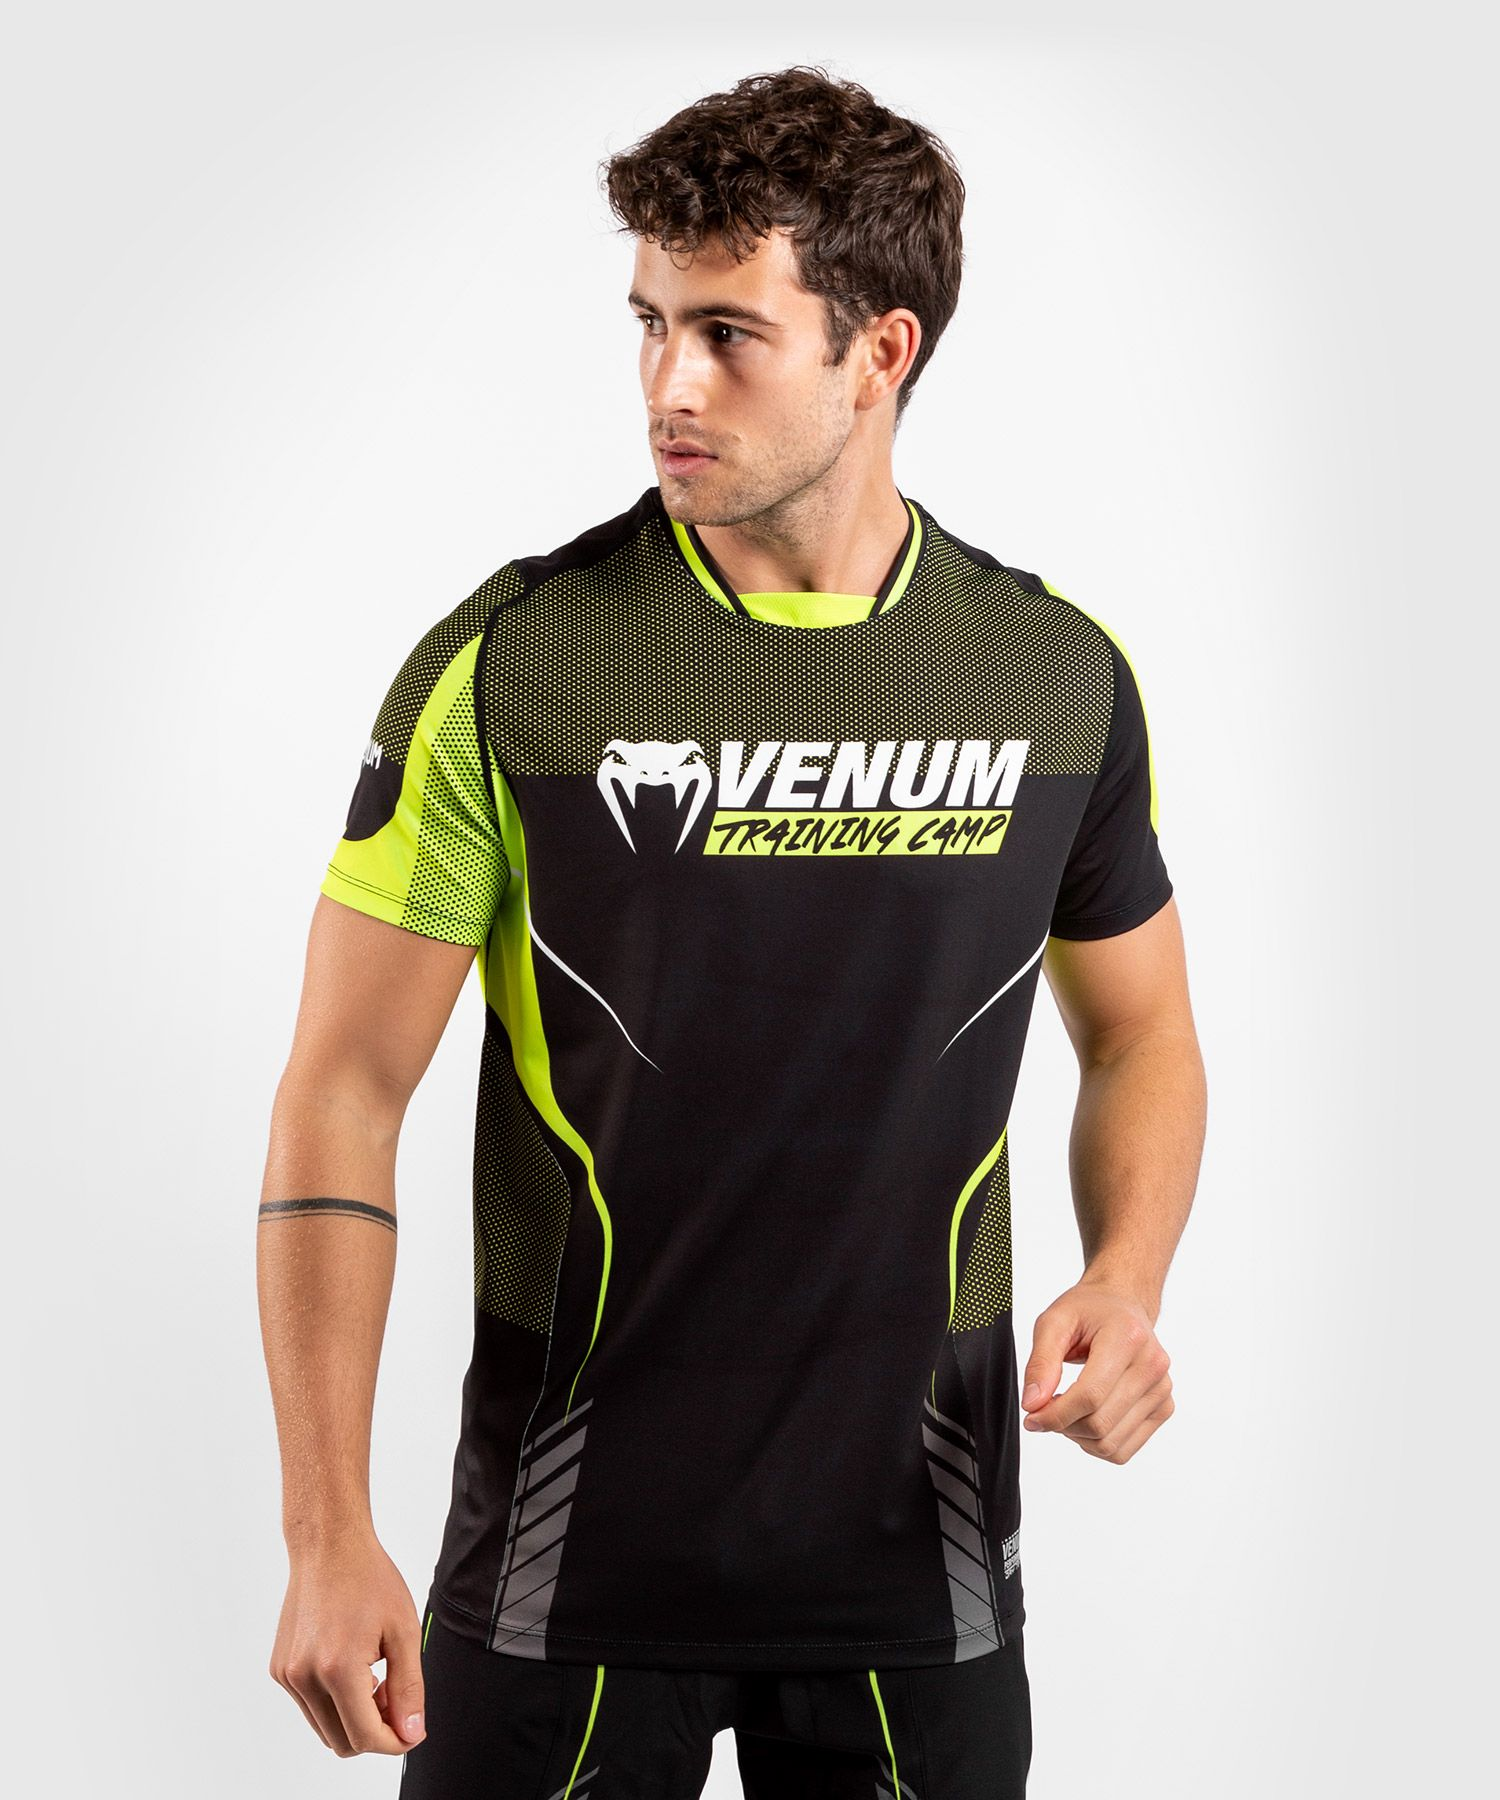 Venum Training Camp 3.0 Dry Tech T-shirt